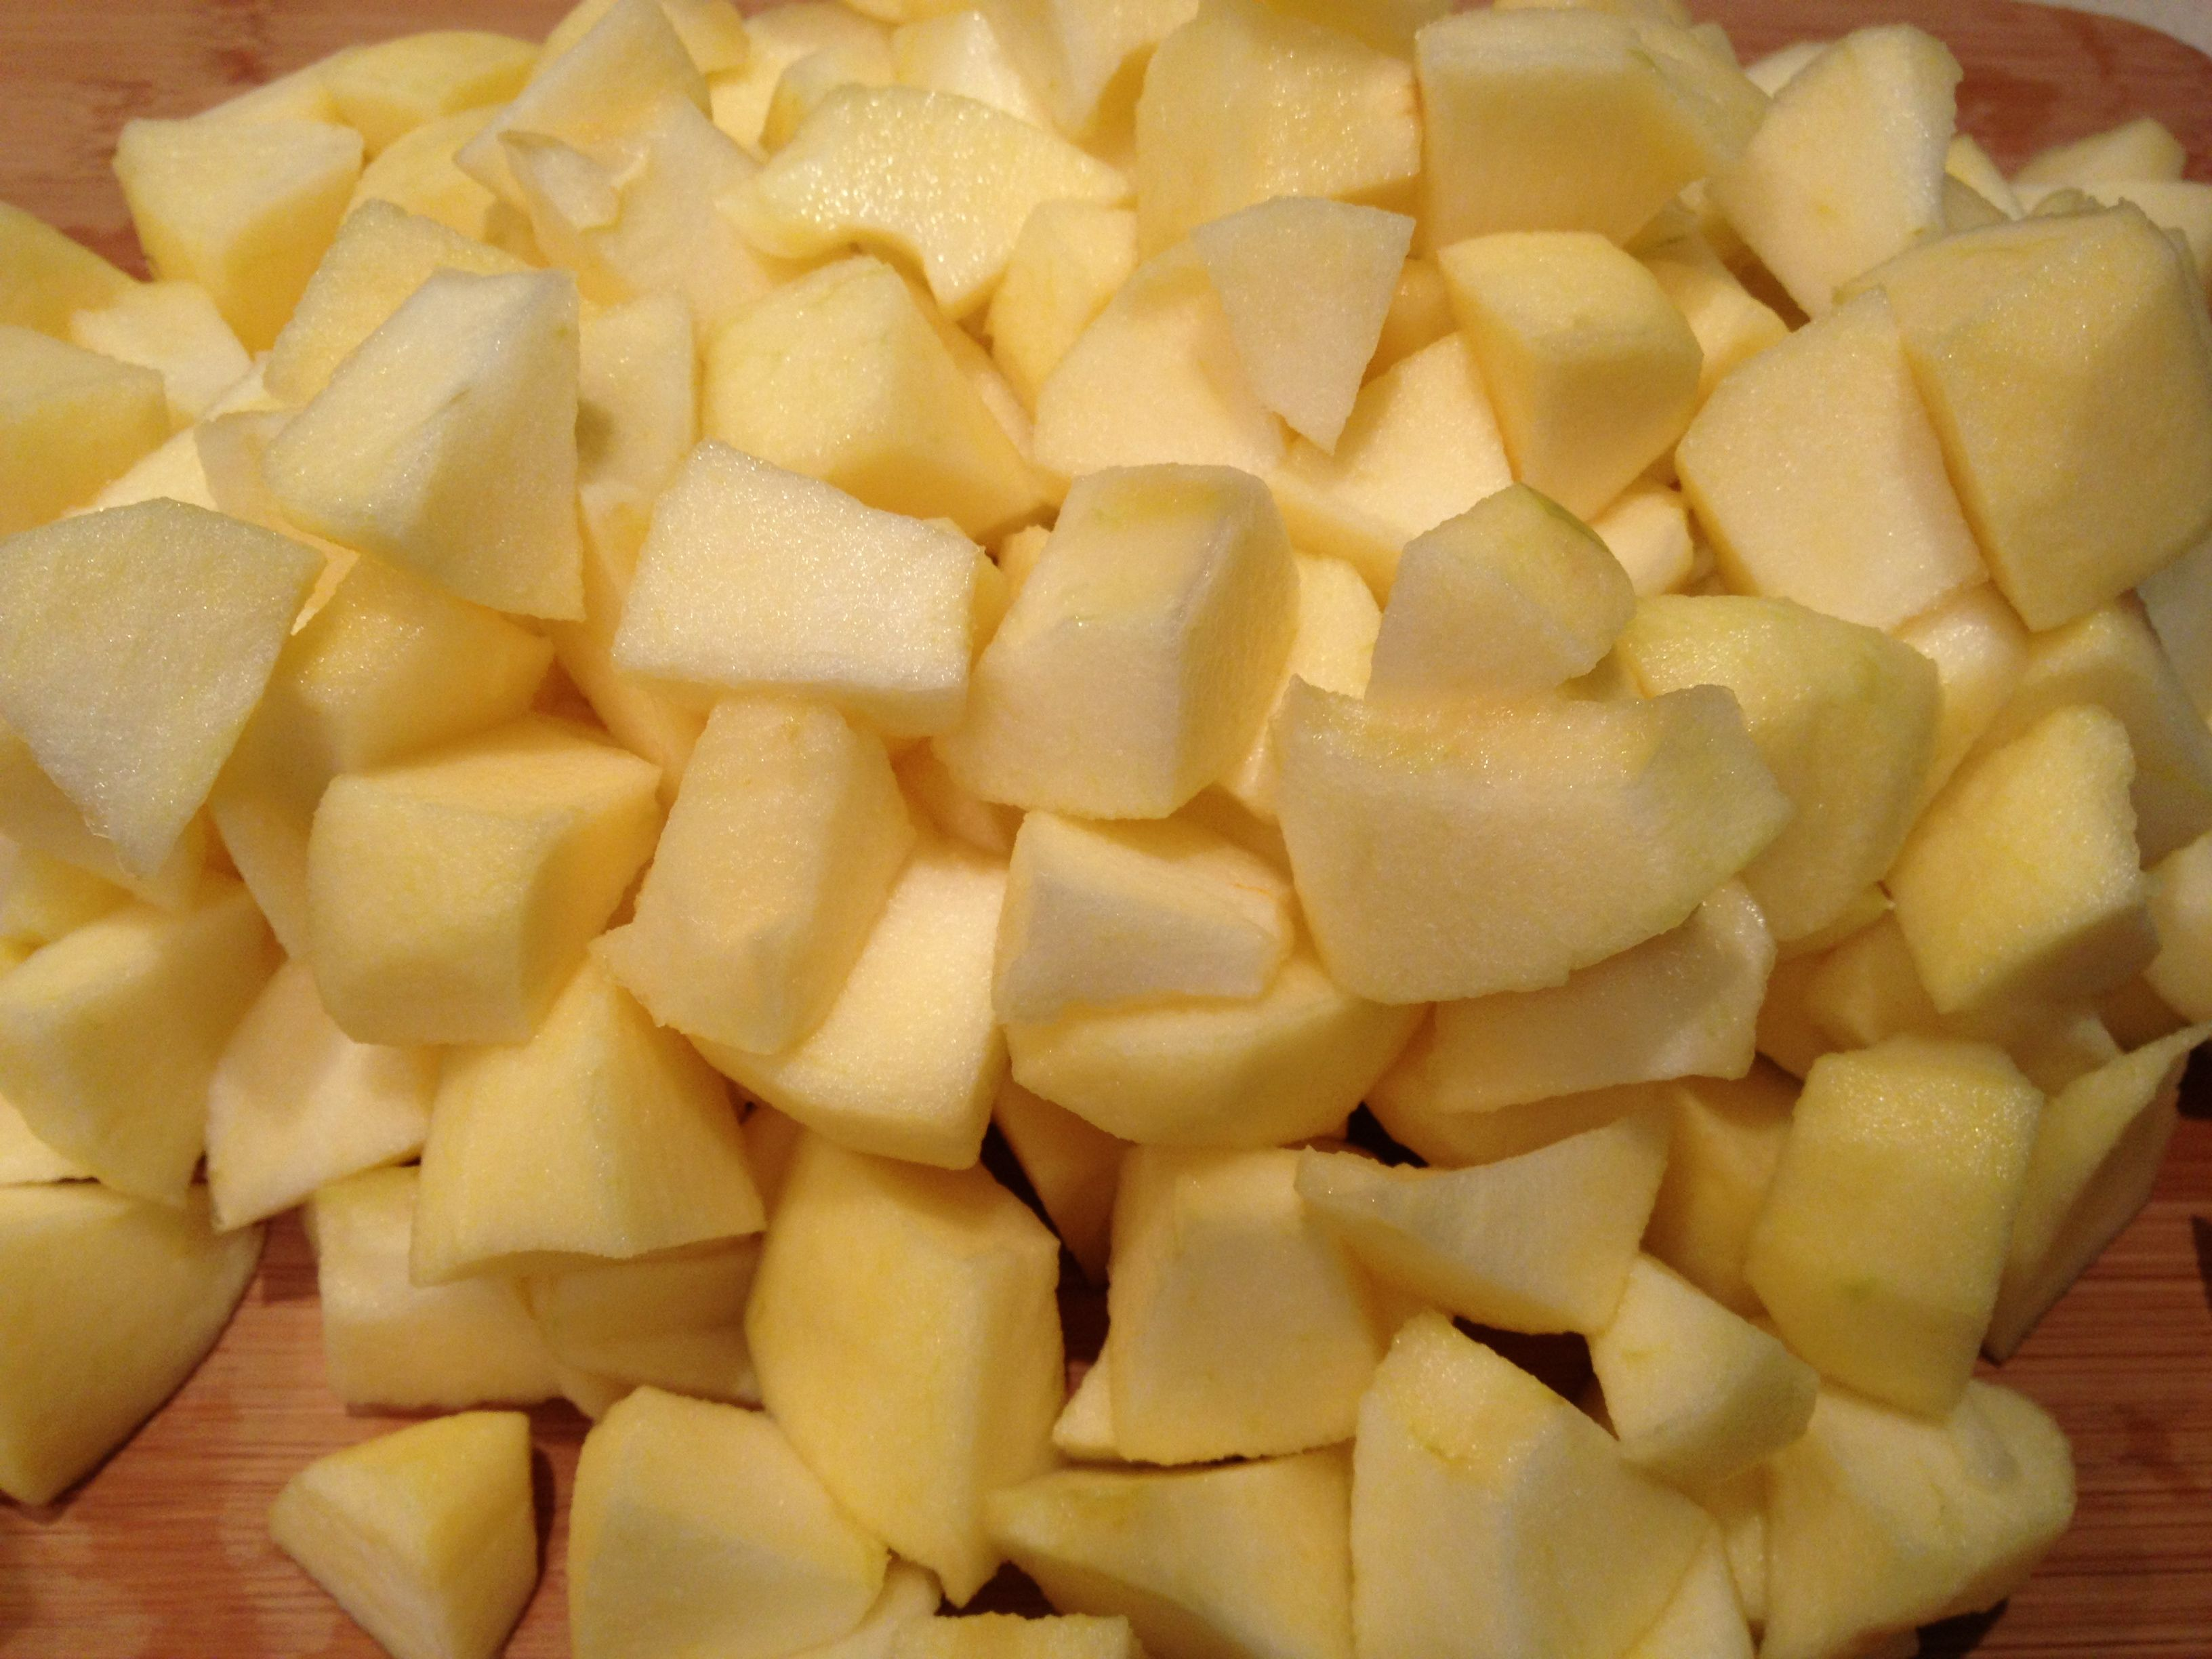 apples diced